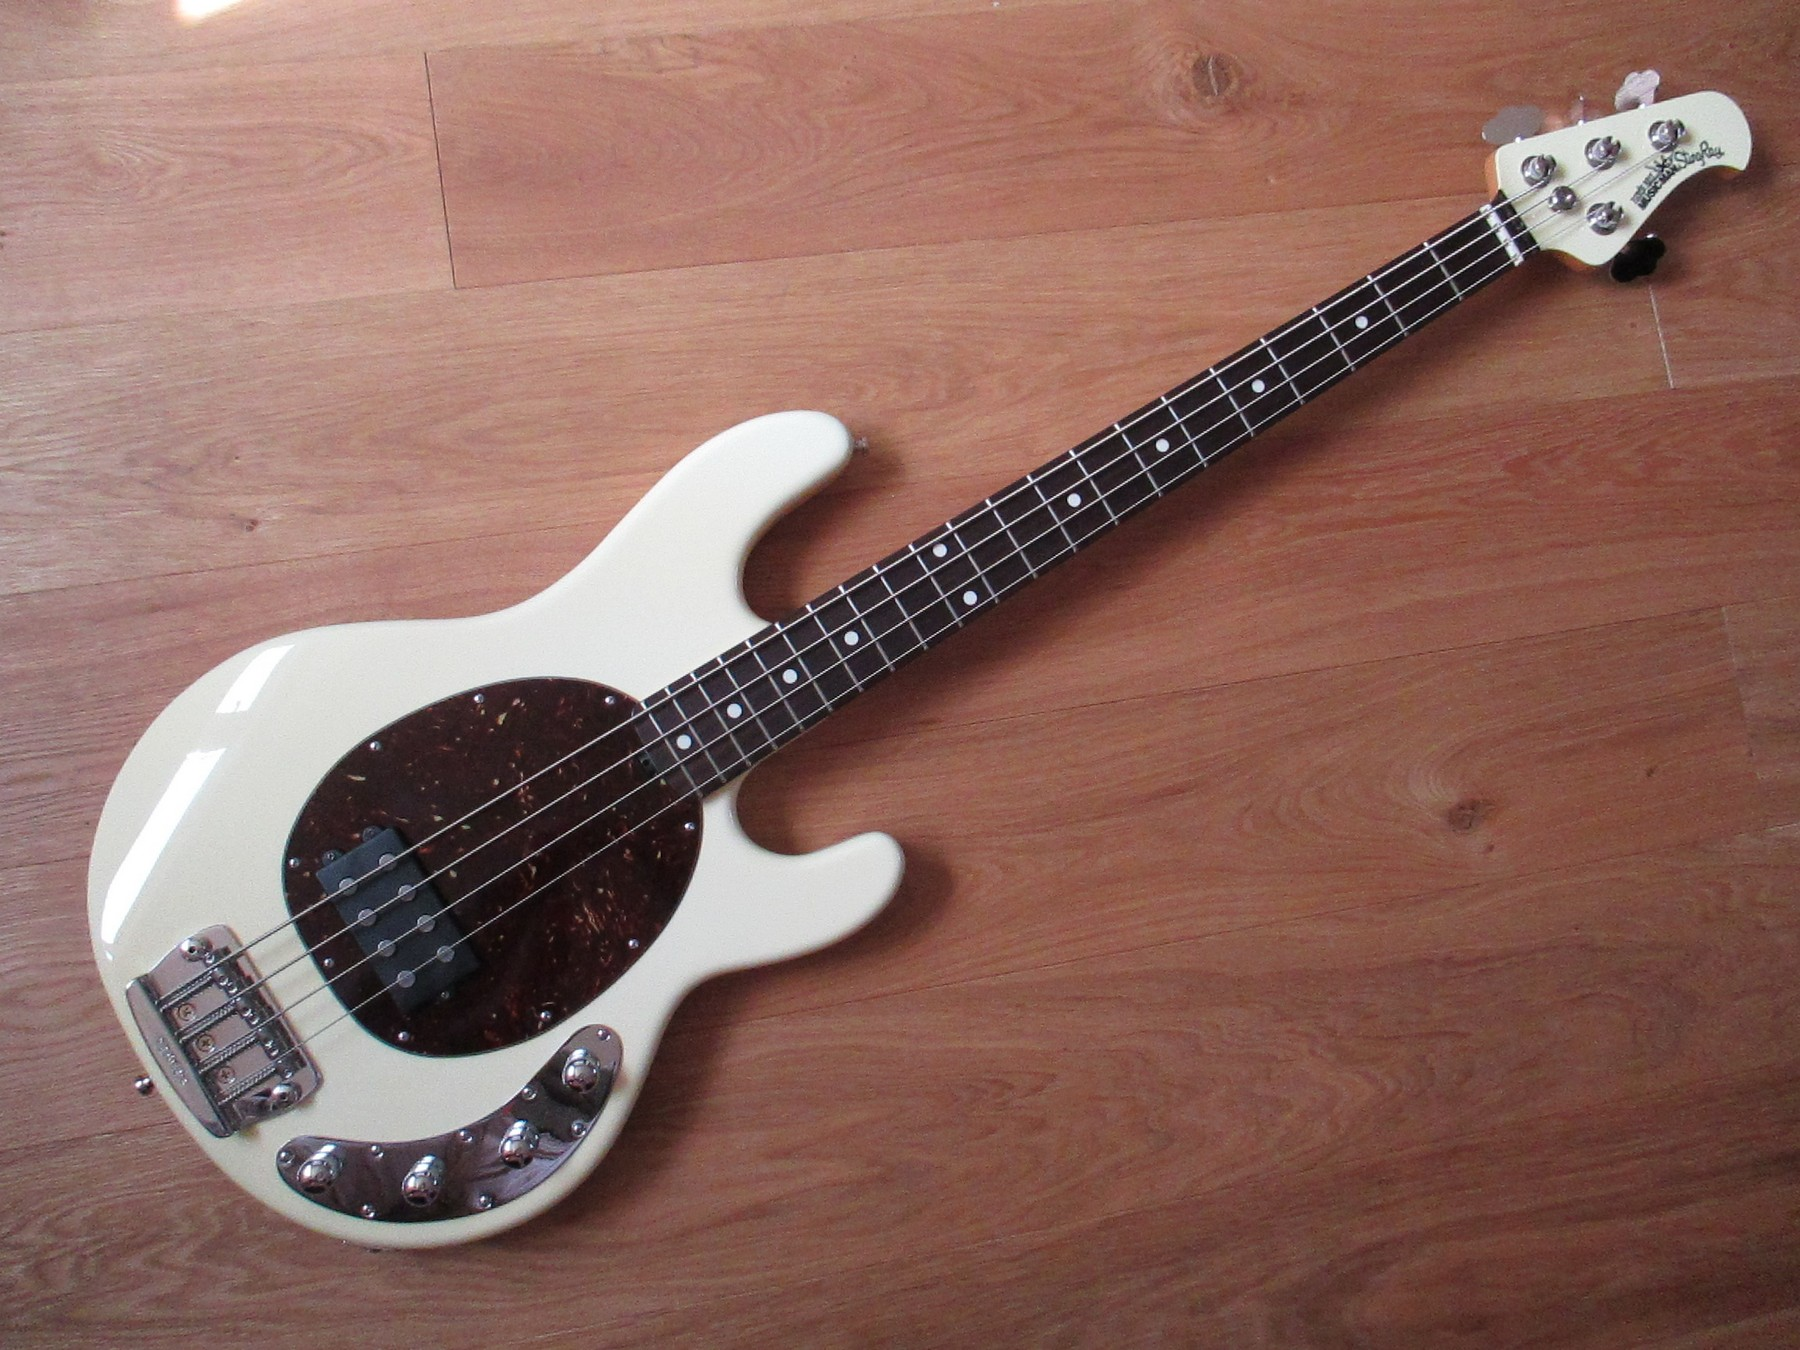 recently sold 2006 musicman stingray bass 3 eq classic cool guitars. Black Bedroom Furniture Sets. Home Design Ideas